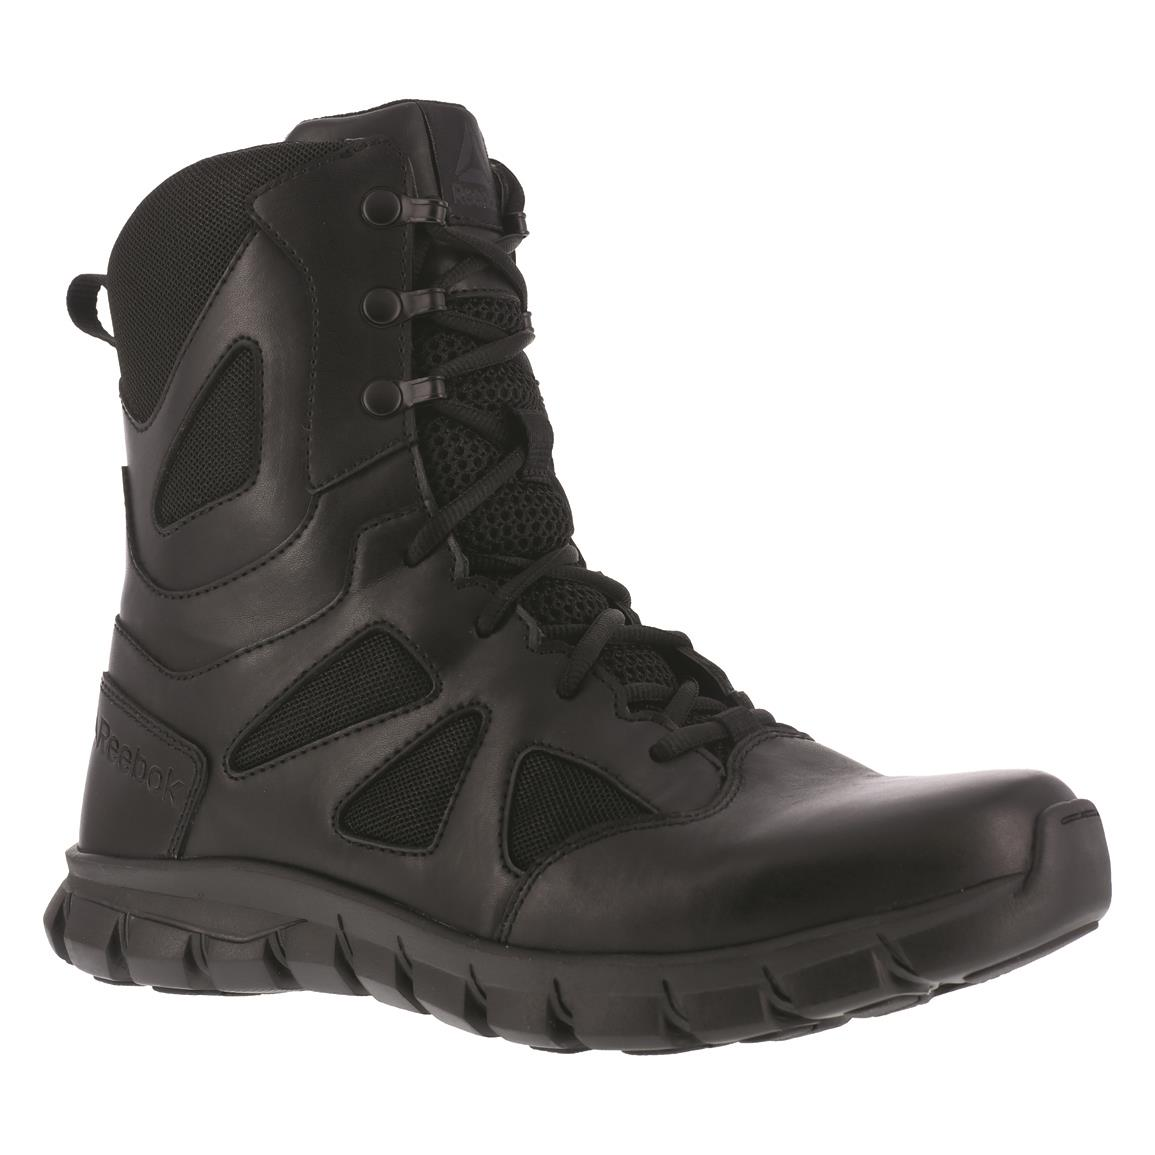 "Reebok 8"" Sublite Cushion Men's Waterproof Tactical Boots, Black"